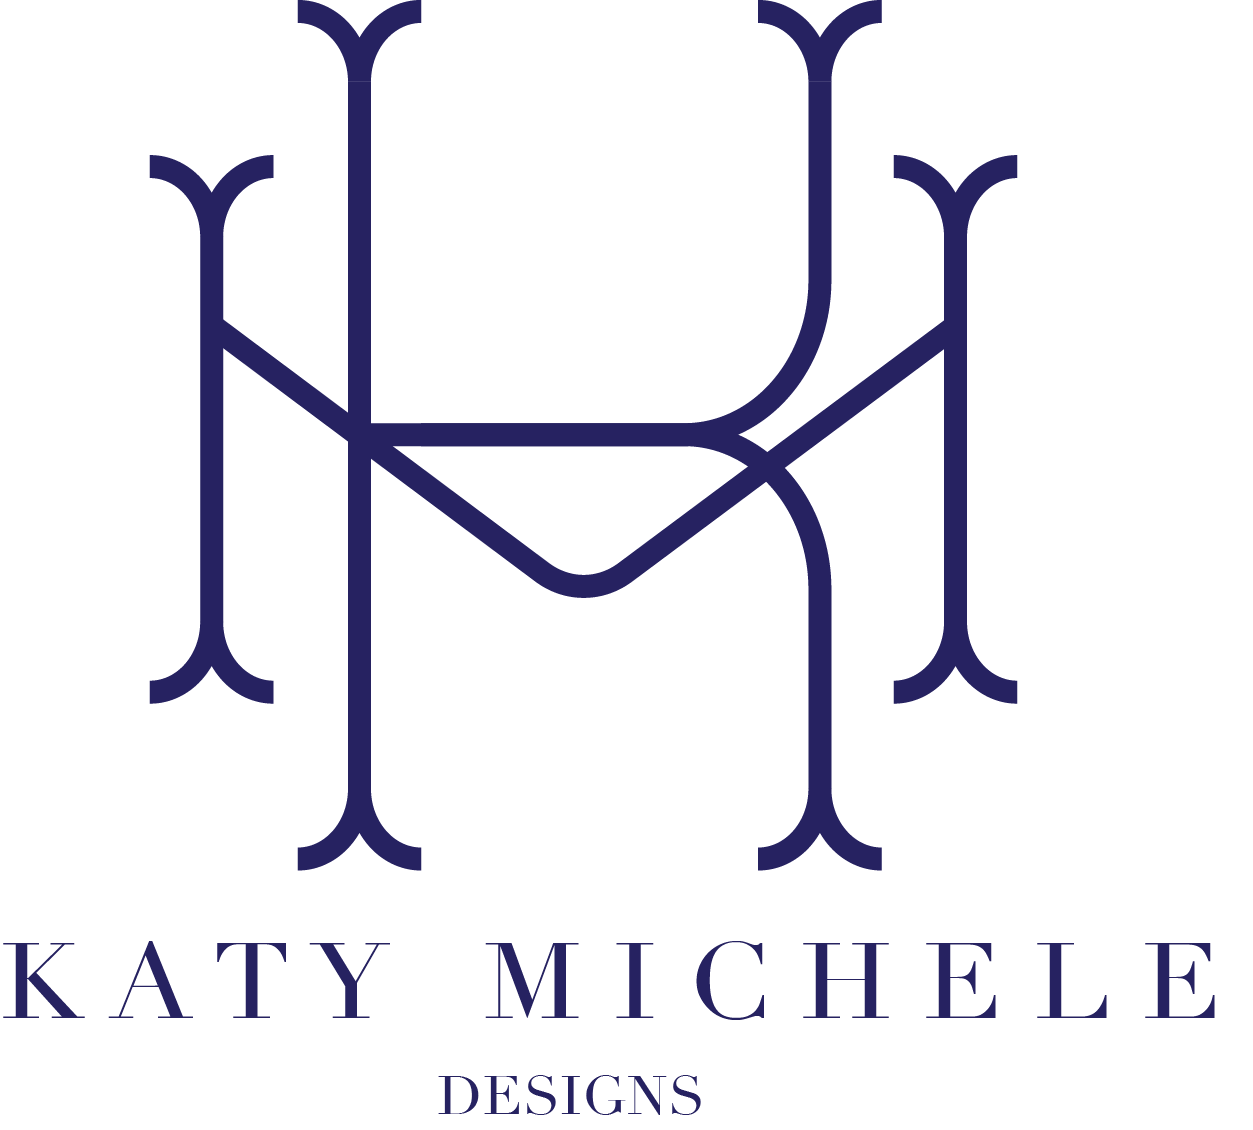 Katy Michele Designs